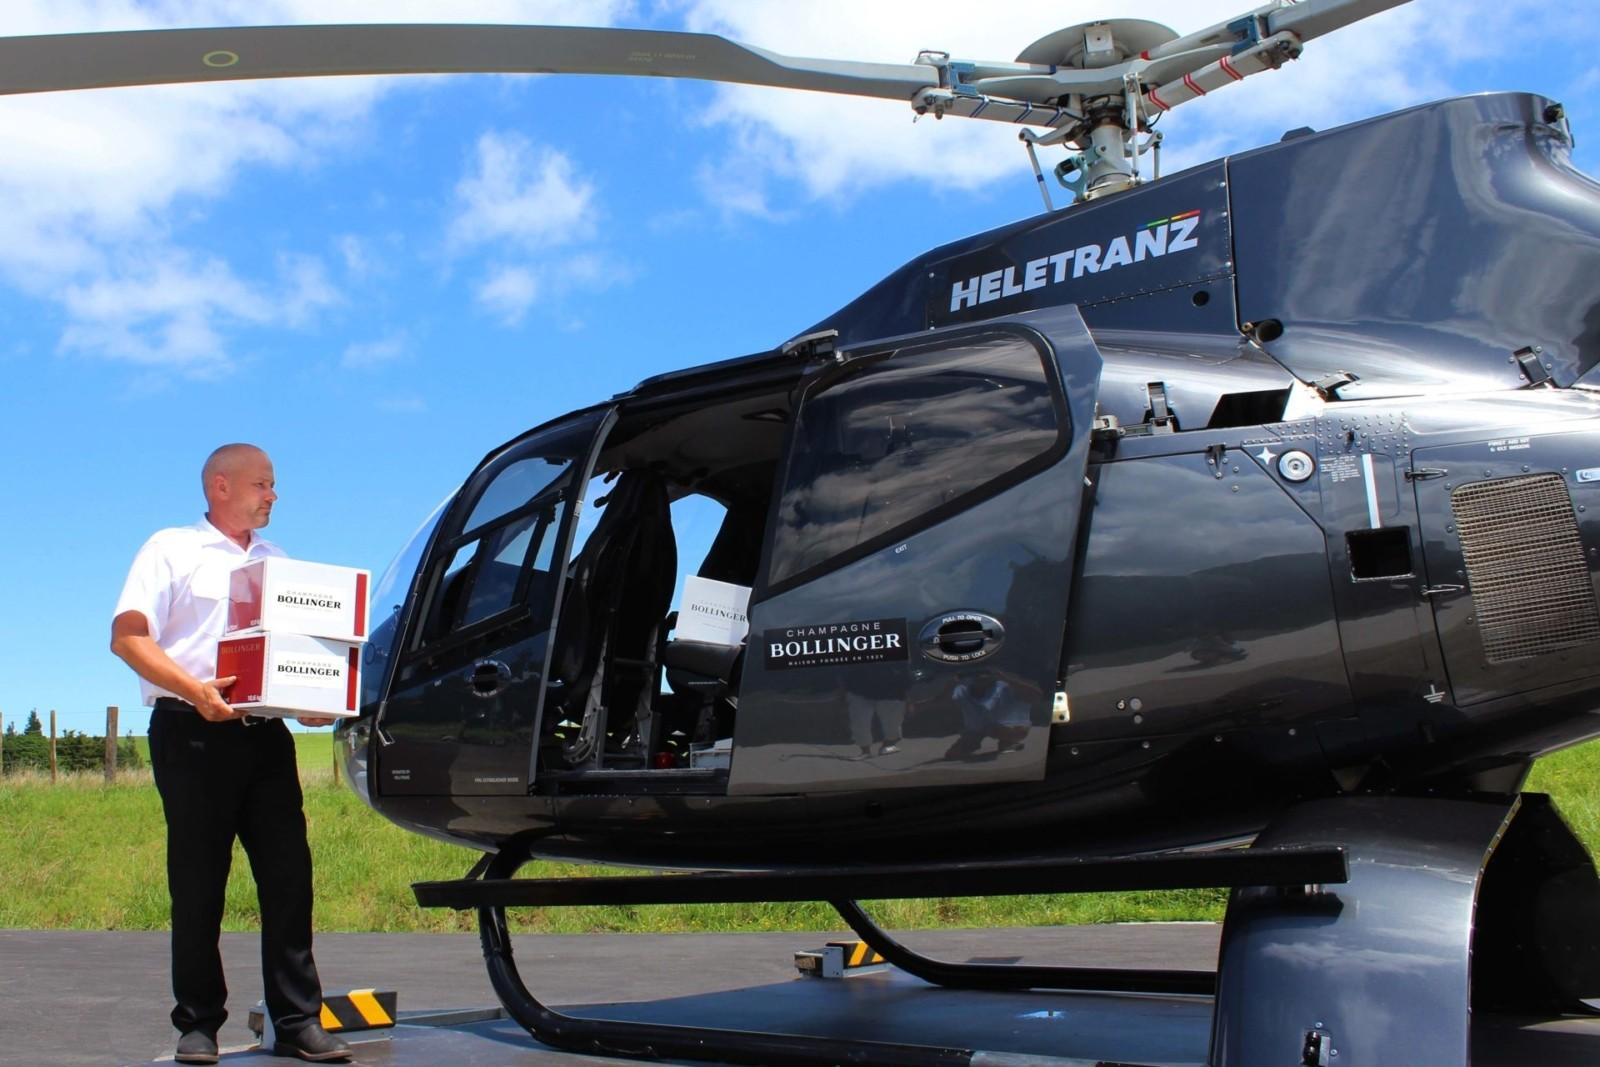 Heletranz delivers Champagne Bollinger by Helicopter